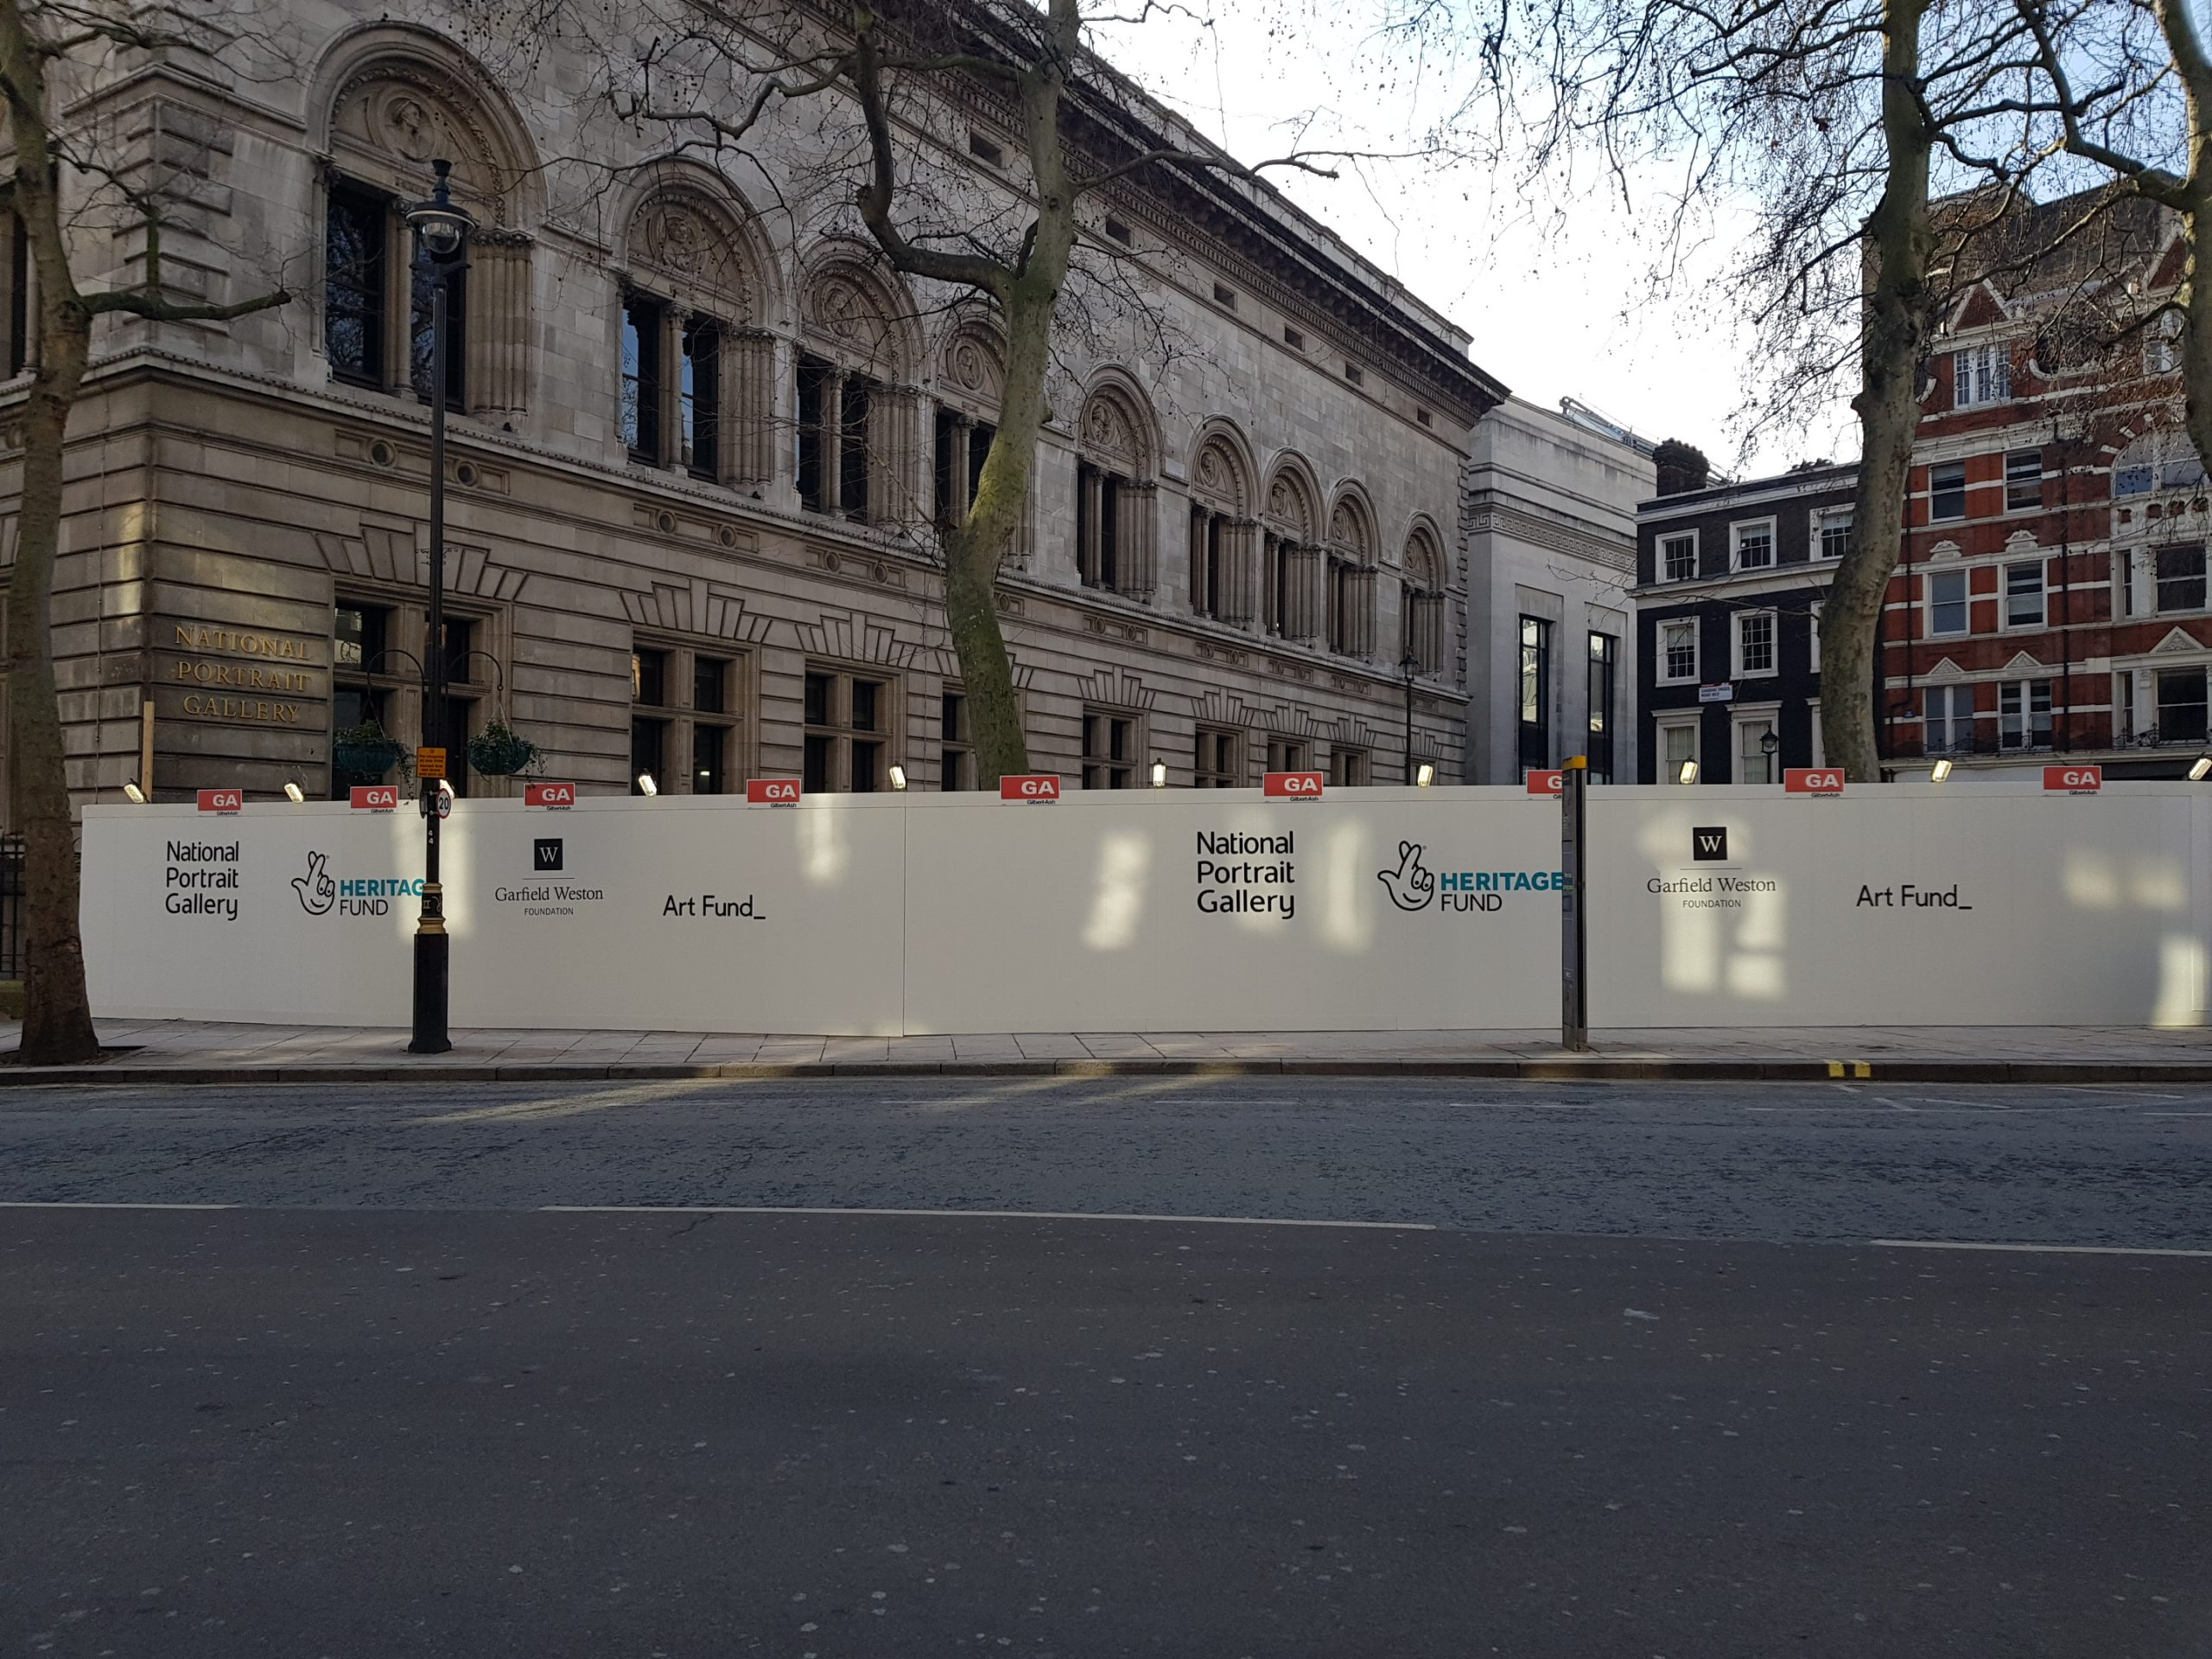 Panthera supplies Full Site Services package to National Portrait Gallery